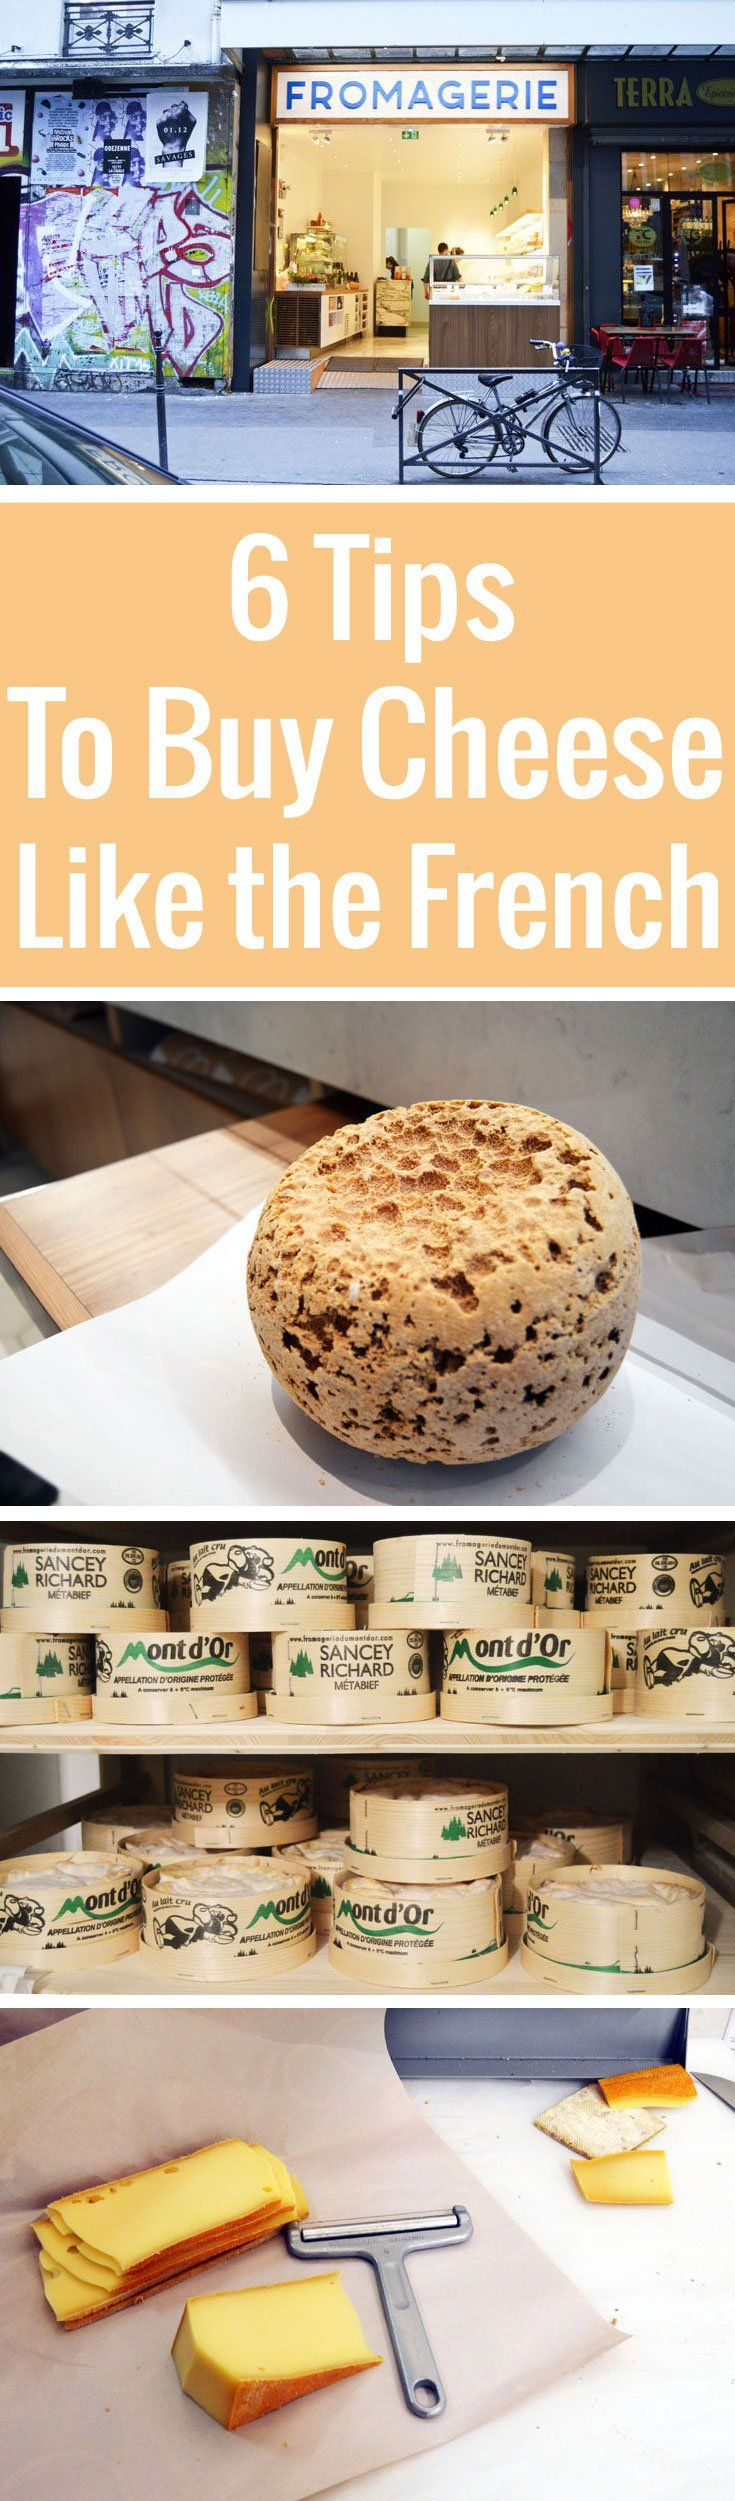 Buying cheese from a Paris cheese shop can be a daunting affair. Not so with our handy guide, complete with tips and phrases to shop like the French!